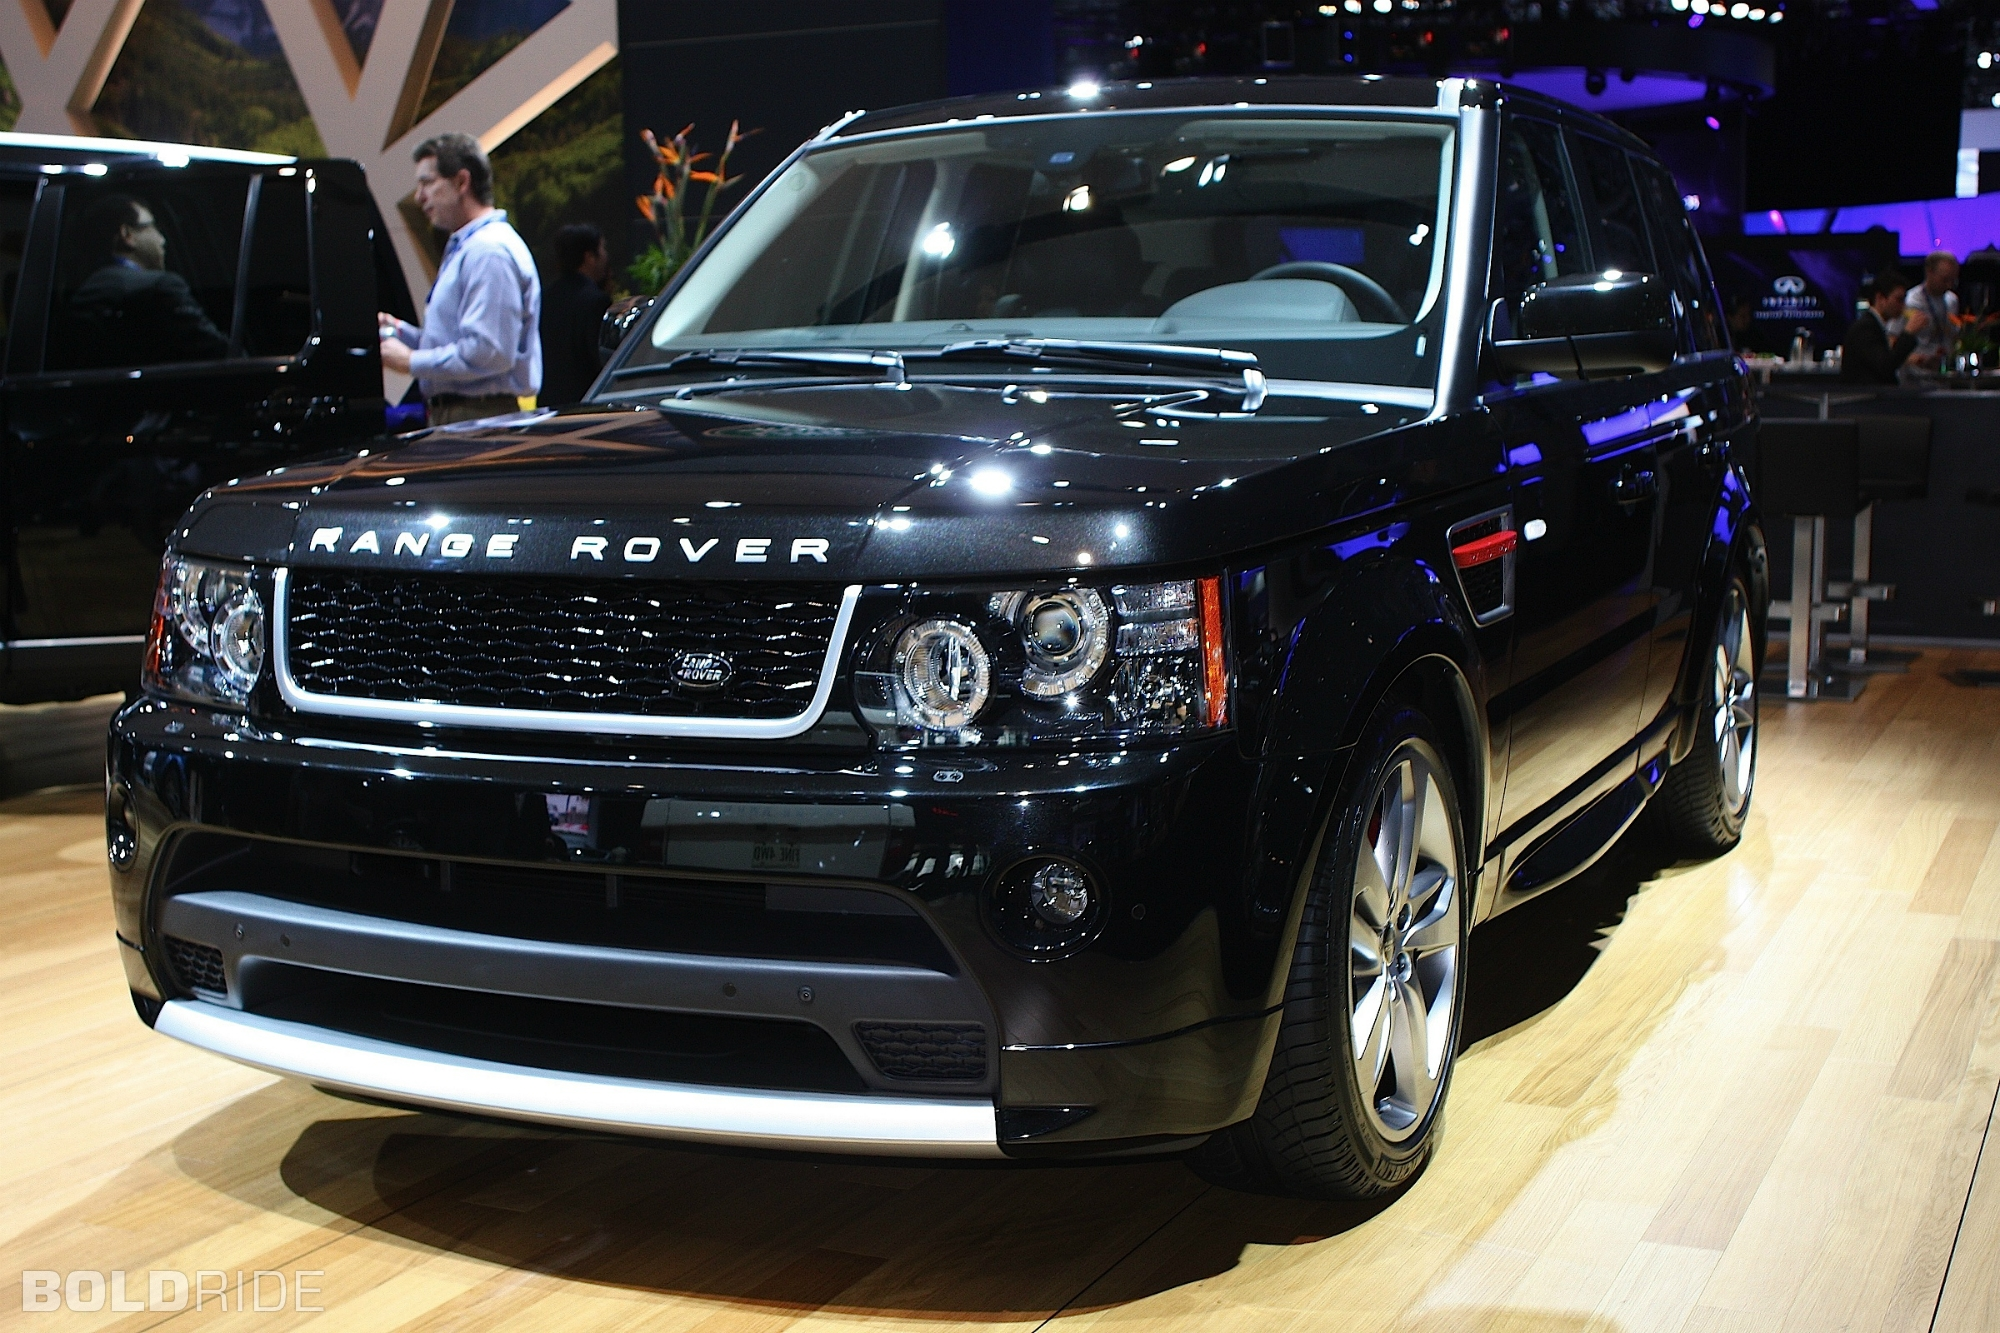 2012 Land Rover Range Rover Information and photos ZombieDrive